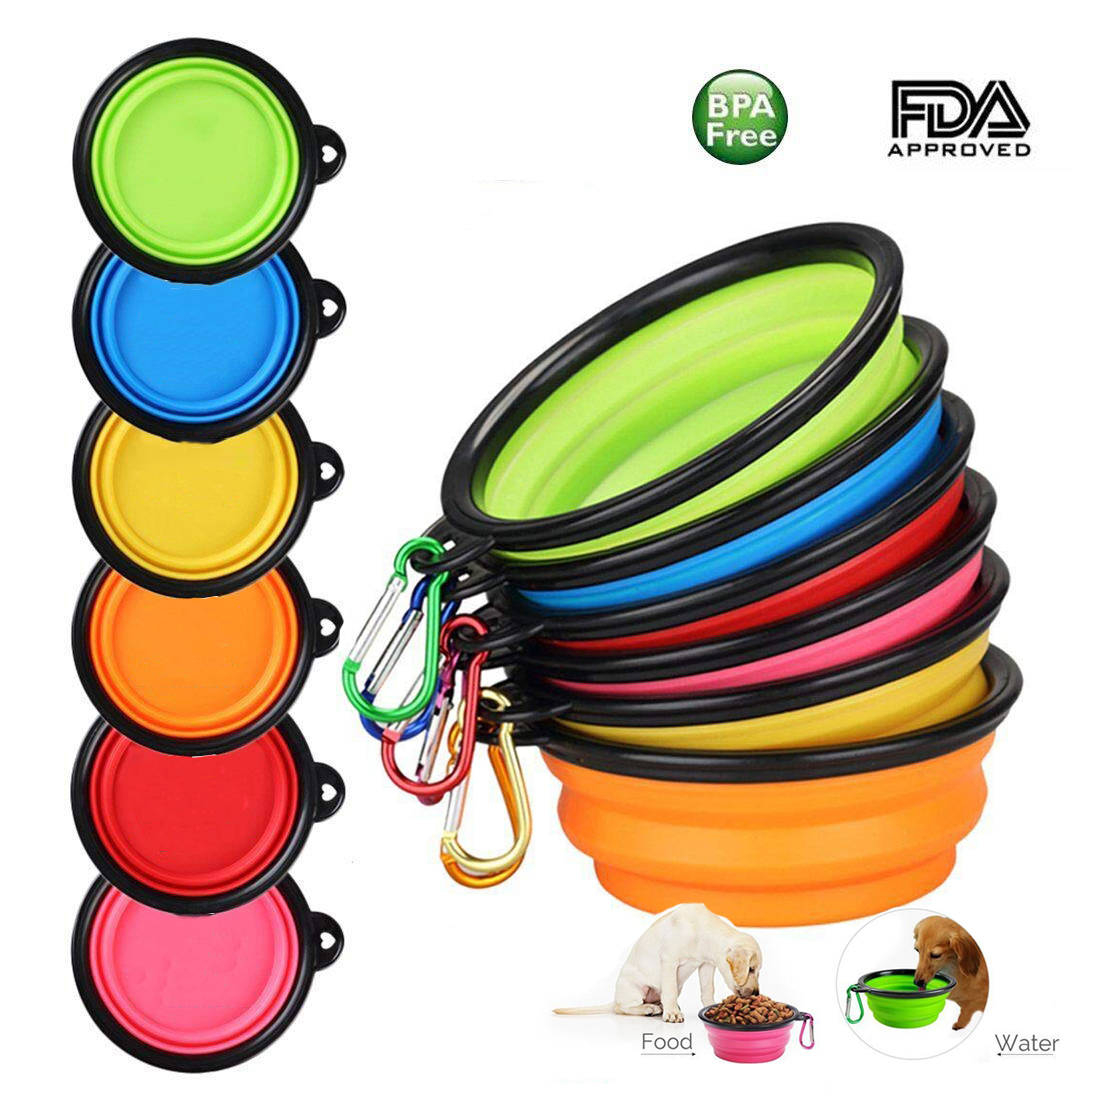 1PC Folding Silicone Dog Bowl Outfit Portable Travel Bowl For Dog Feeder Utensils Small Mudium Dog Bowls Pet Accessories